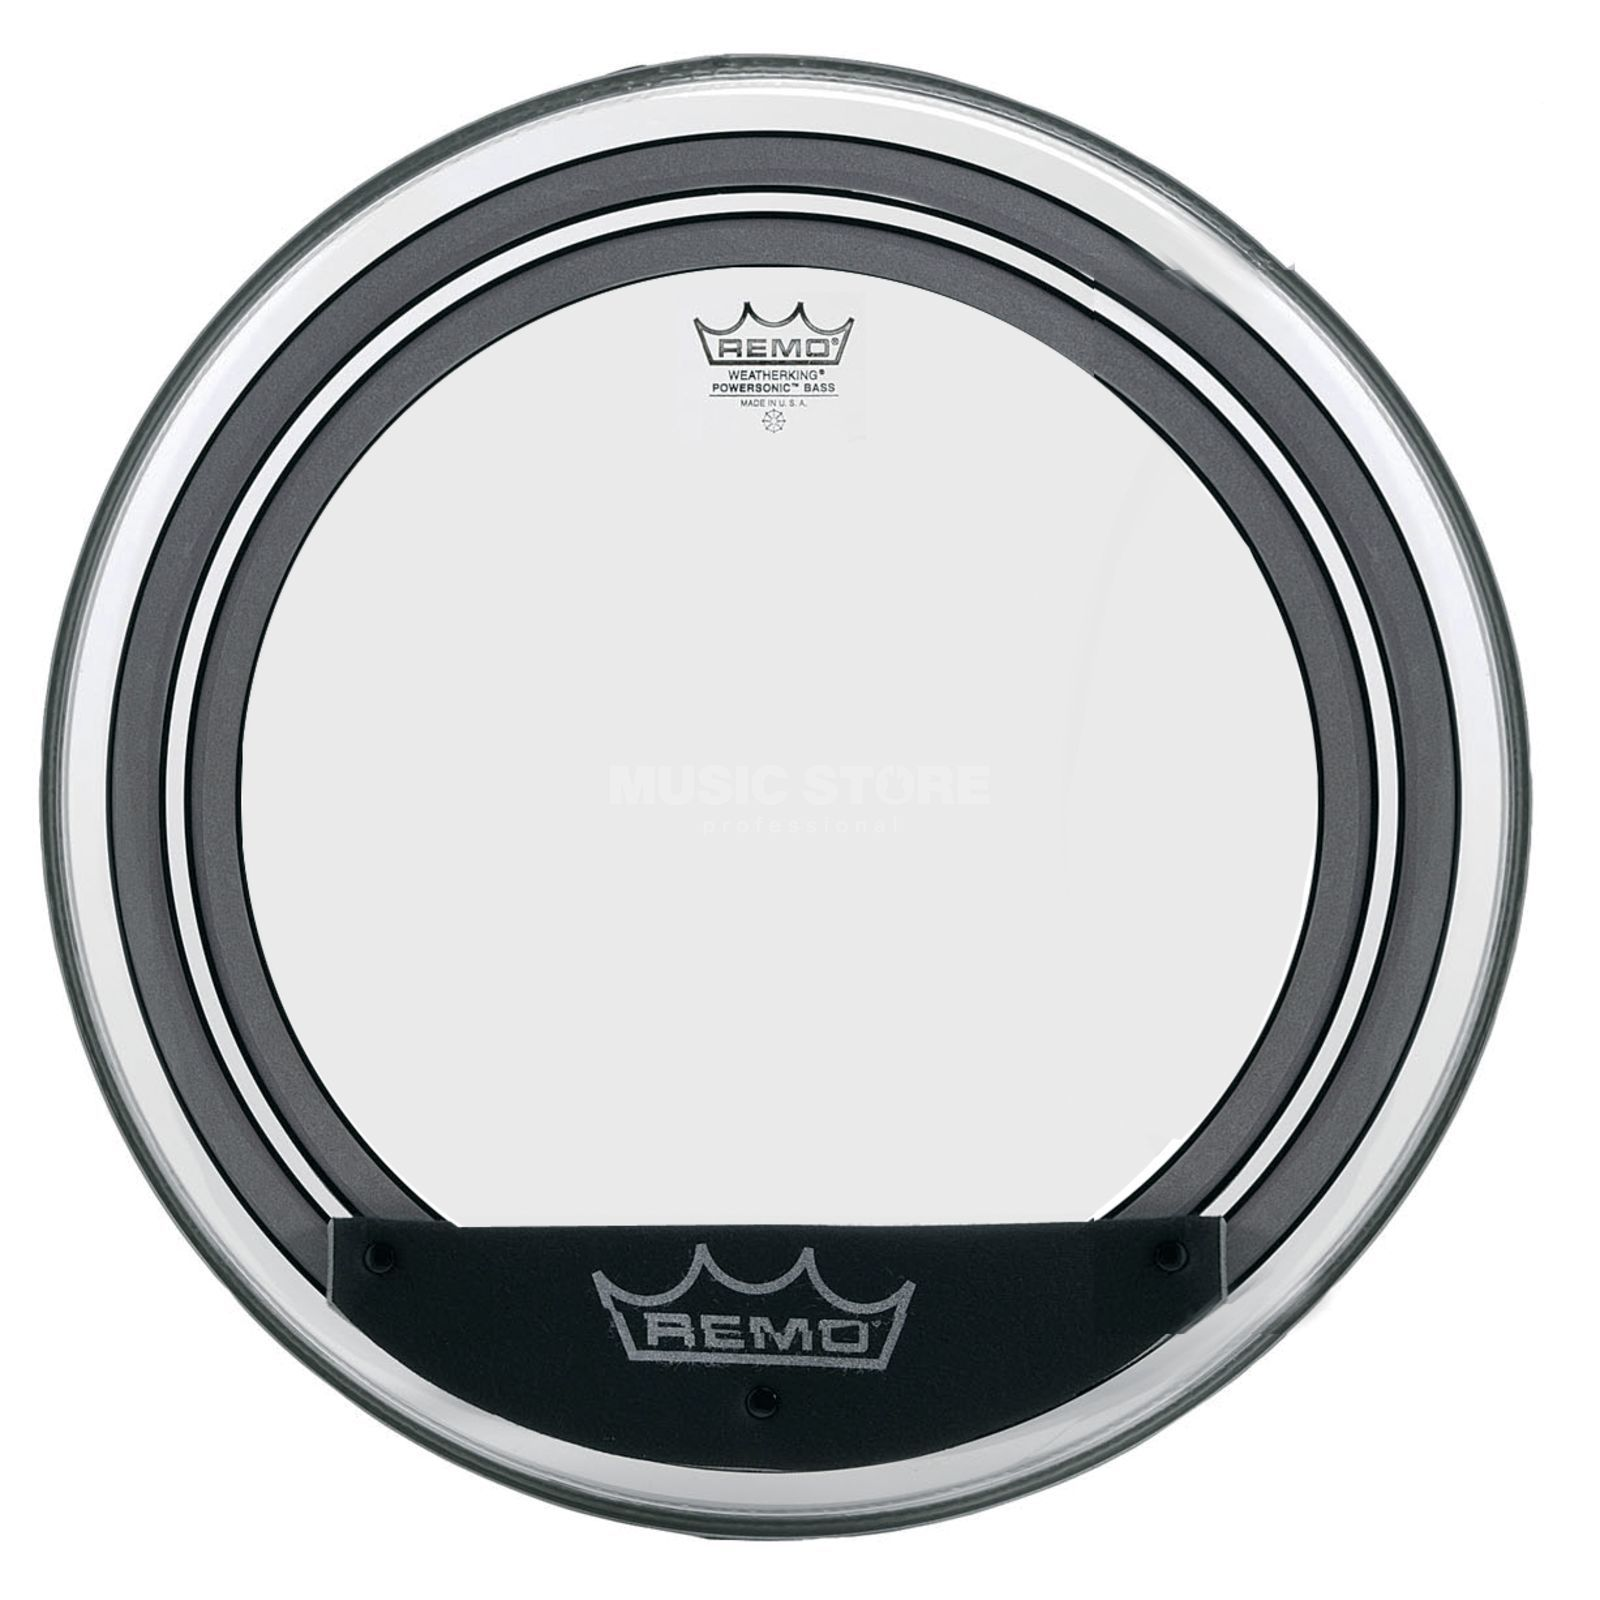 "Remo Powersonic 20"", clear, BassDrum Batter Head Изображение товара"